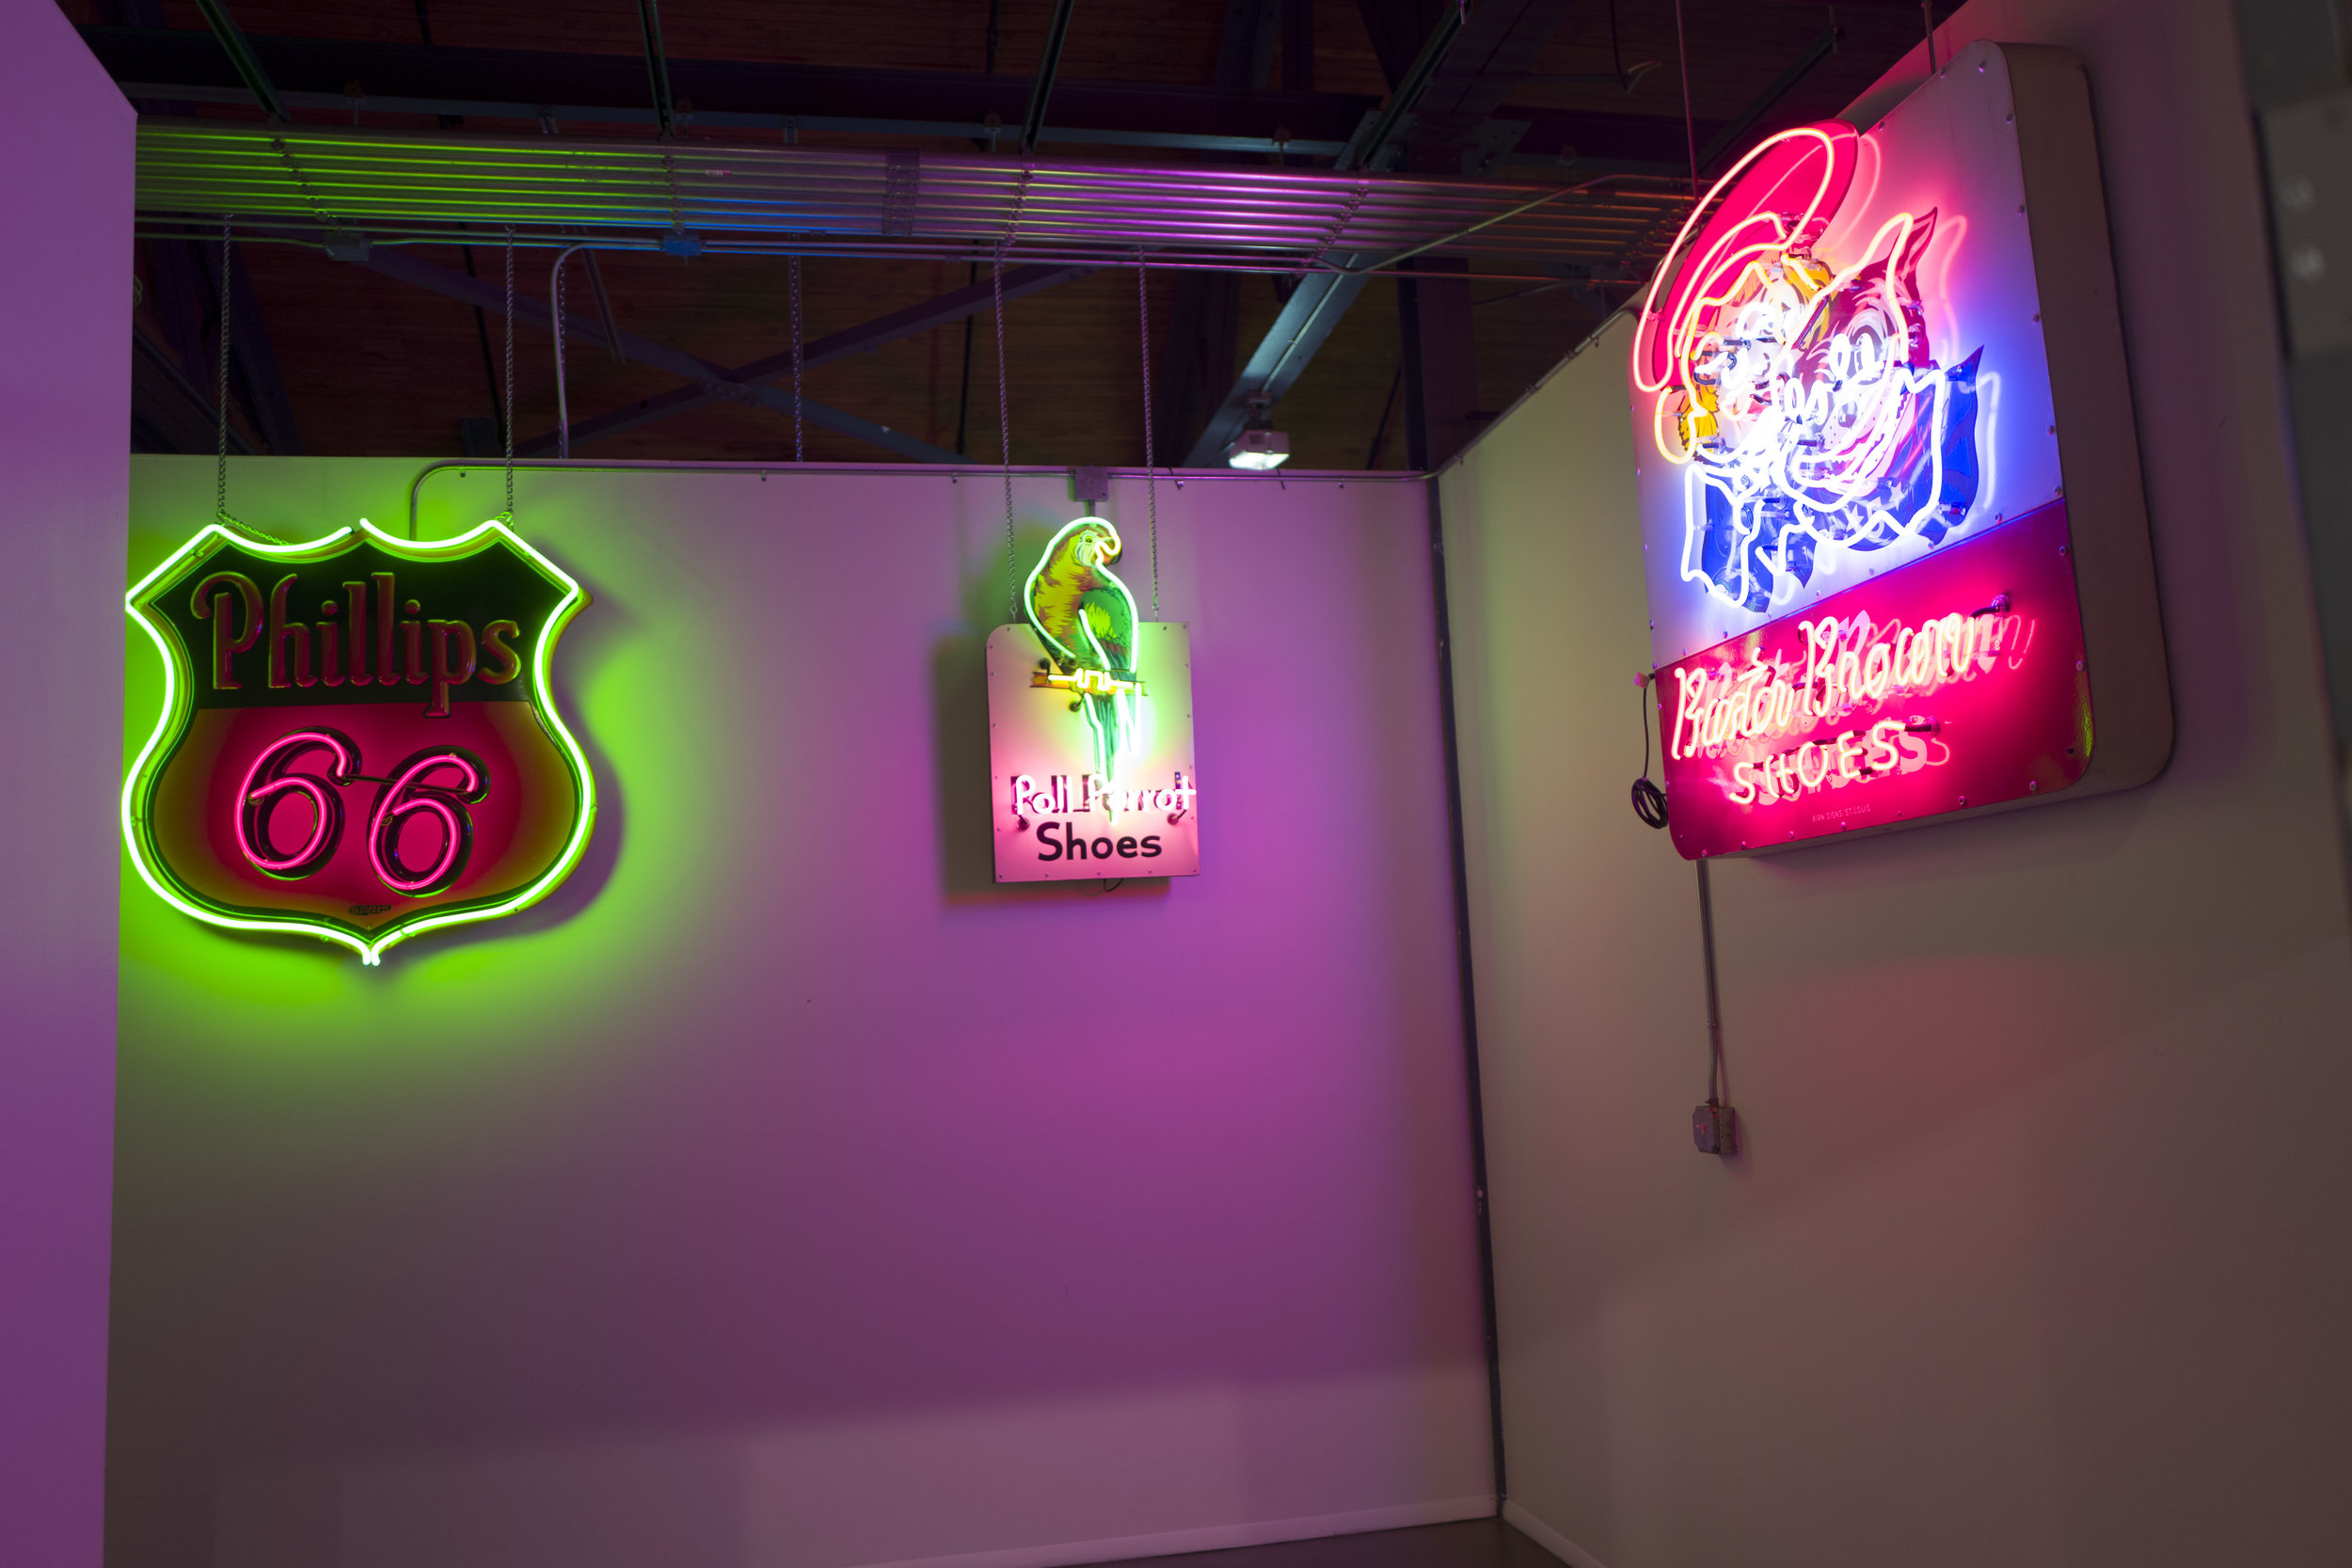 Love the neon signs leading to the Atrium Loft space!